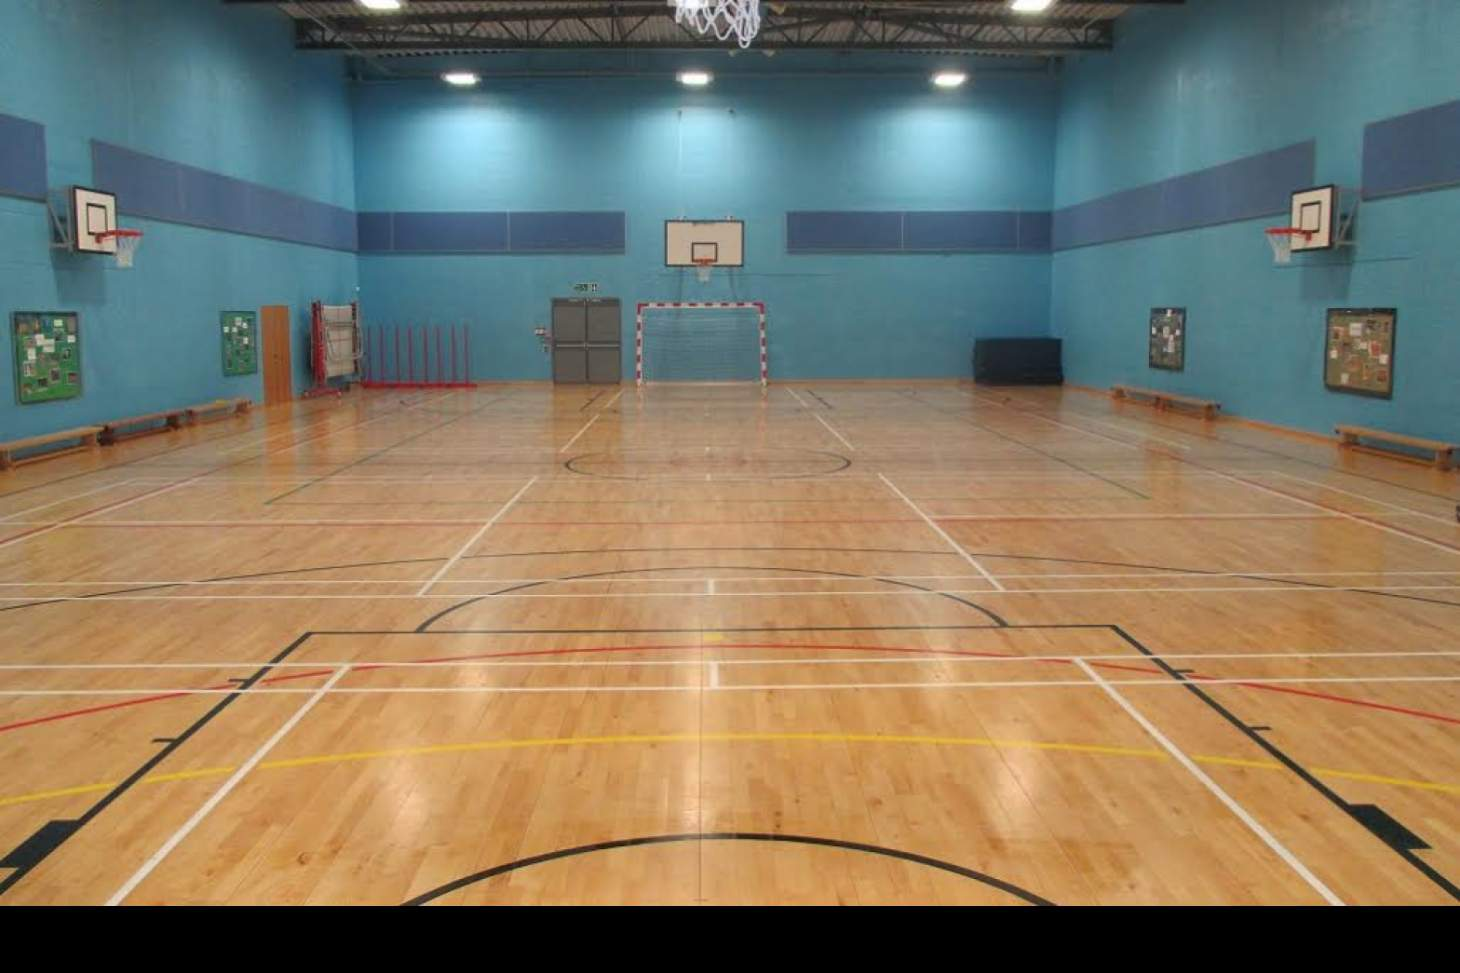 Prendergast Vale School Indoor basketball court